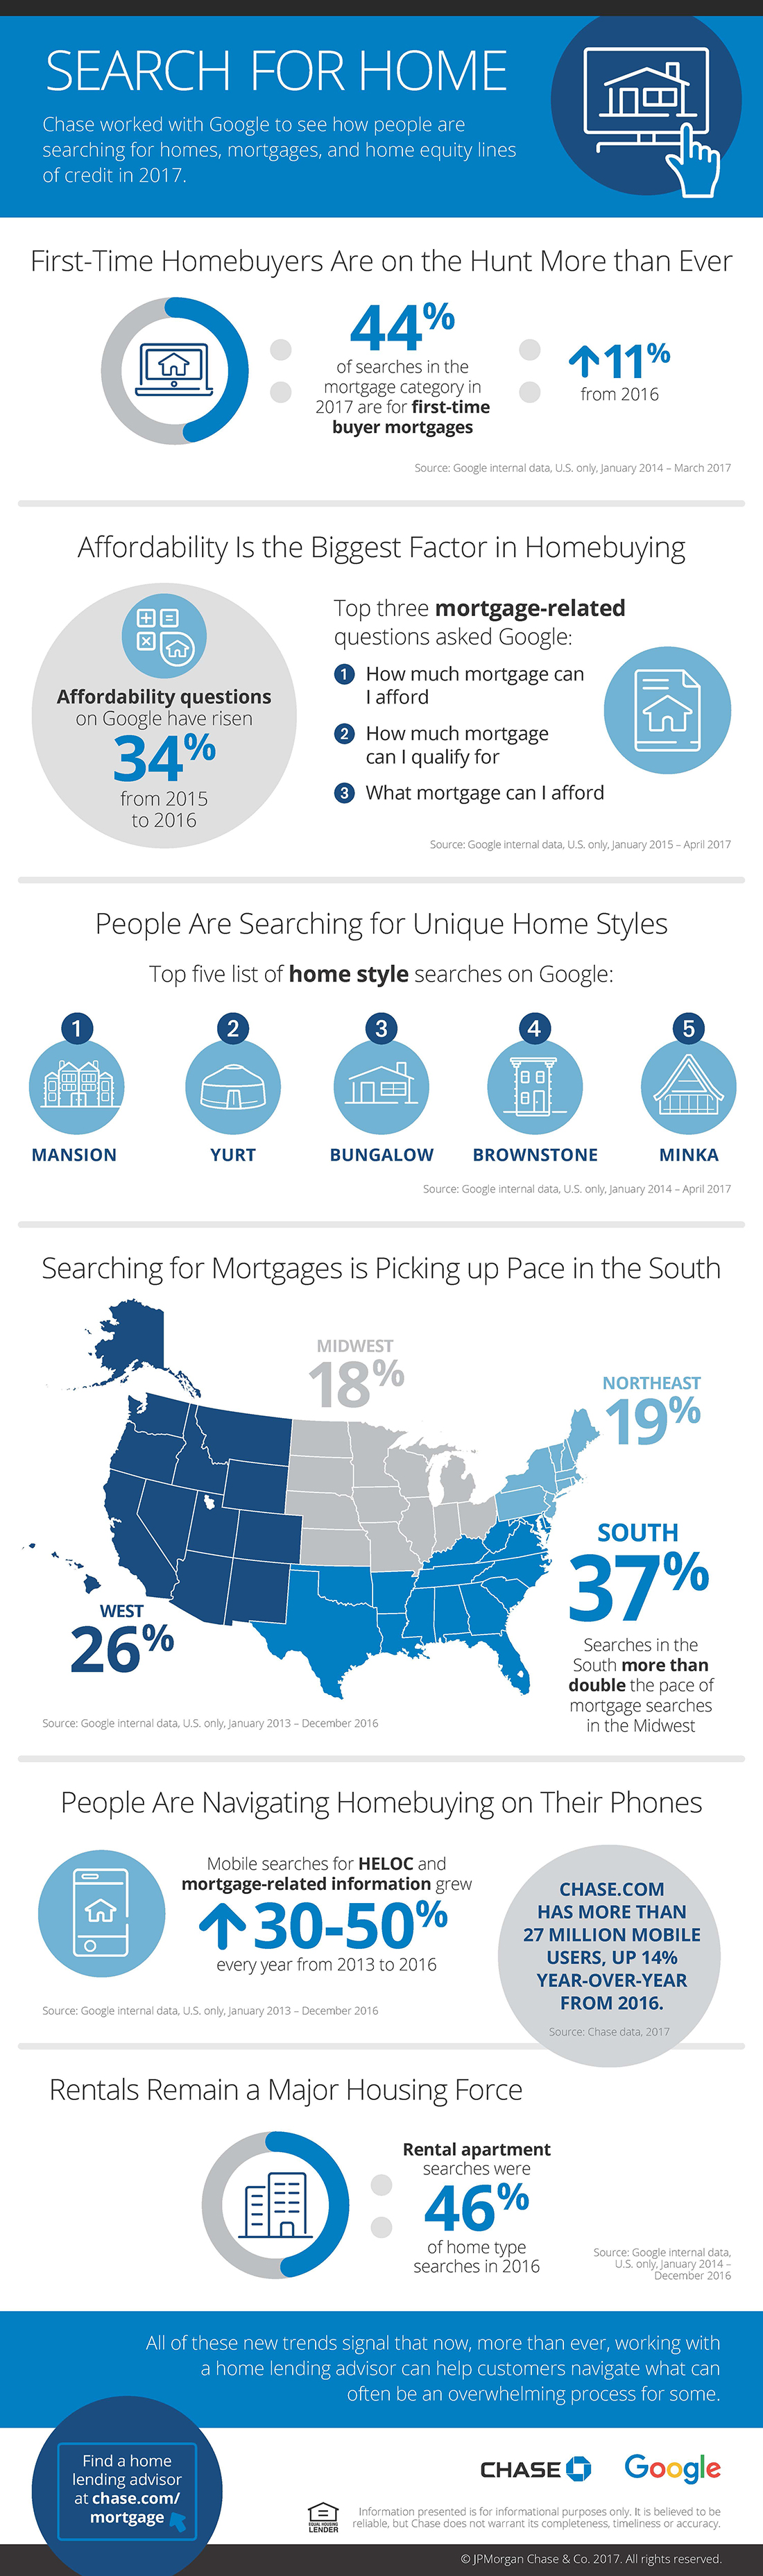 Chase Google search infographic